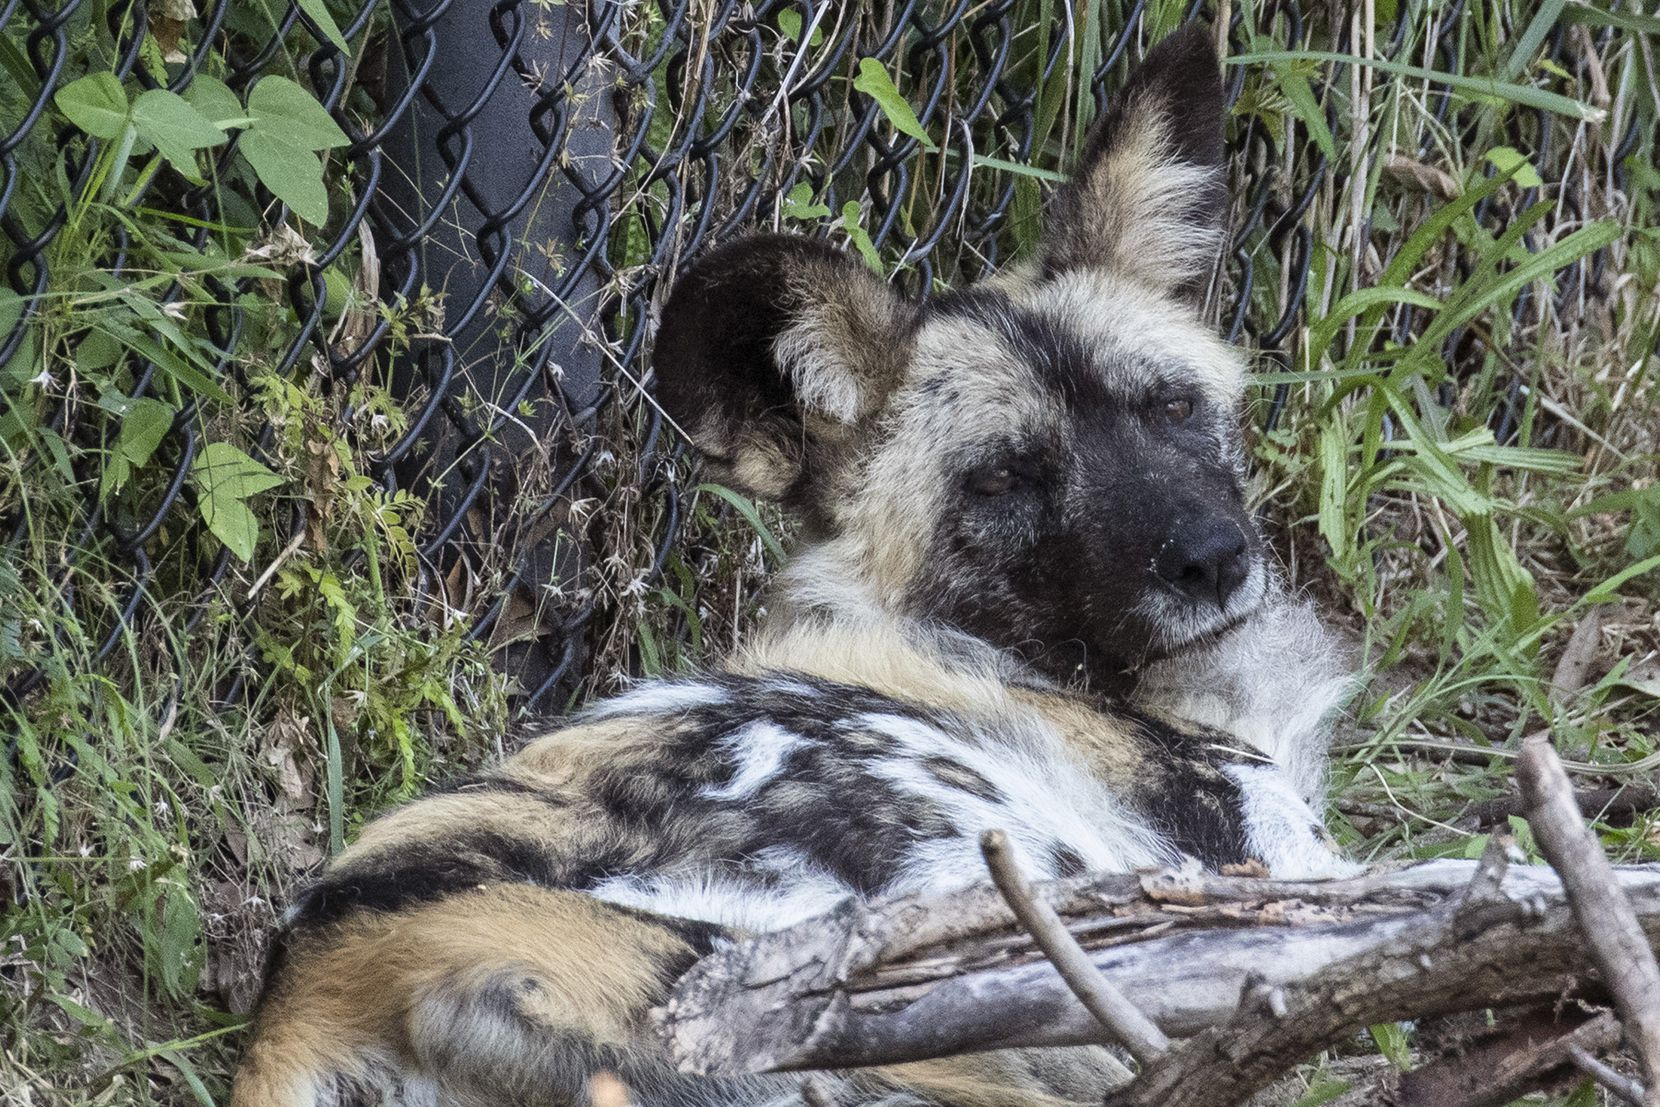 Ola, an 8-year-old female African painted dog, lies down in her new habitat in the Dallas Zoo. She, along with two more African painted dogs, are the first of the species at the Dallas Zoo since 1962.